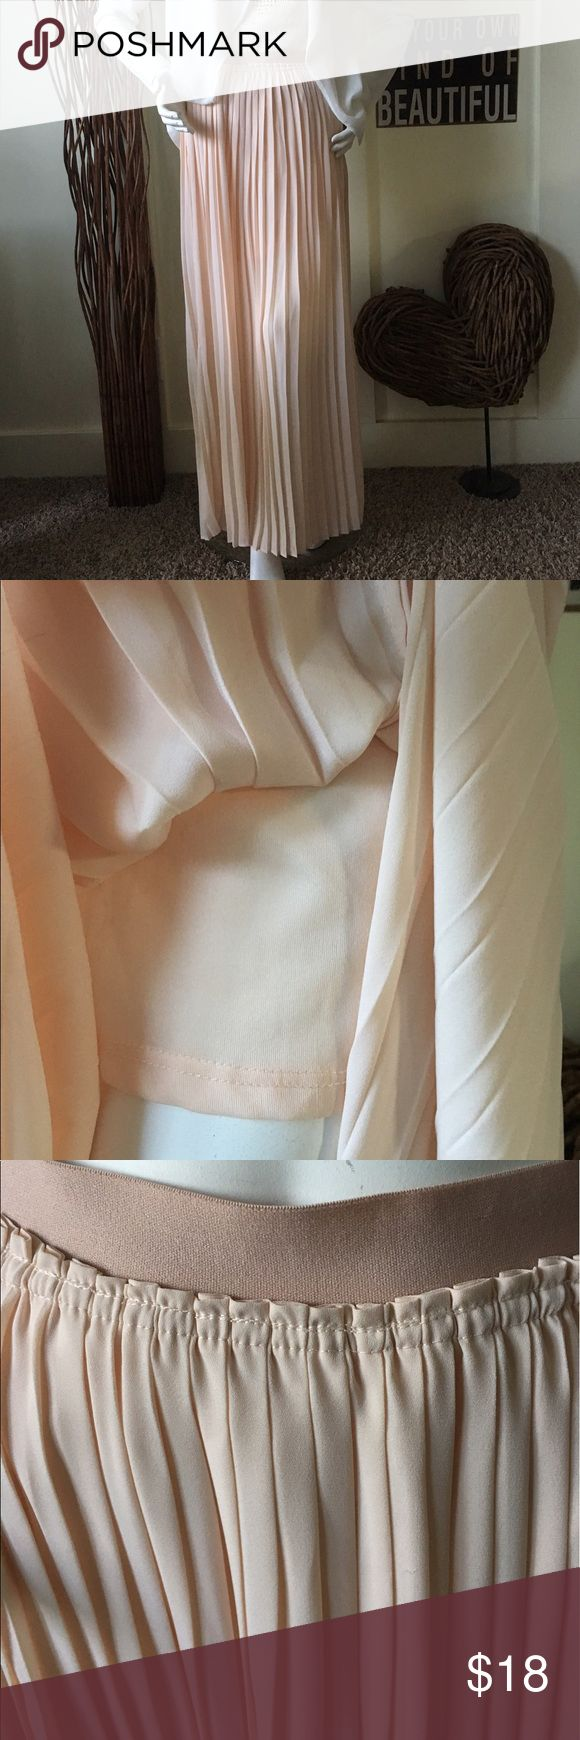 Beautiful  peach pleated xl maxi skirt Beautiful peach pleated maxi skirt with elastic band Waist and a beautiful lined mini skirt underneath.  The skirt has splits in the front to show off your pretty legs. Cato Skirts Maxi